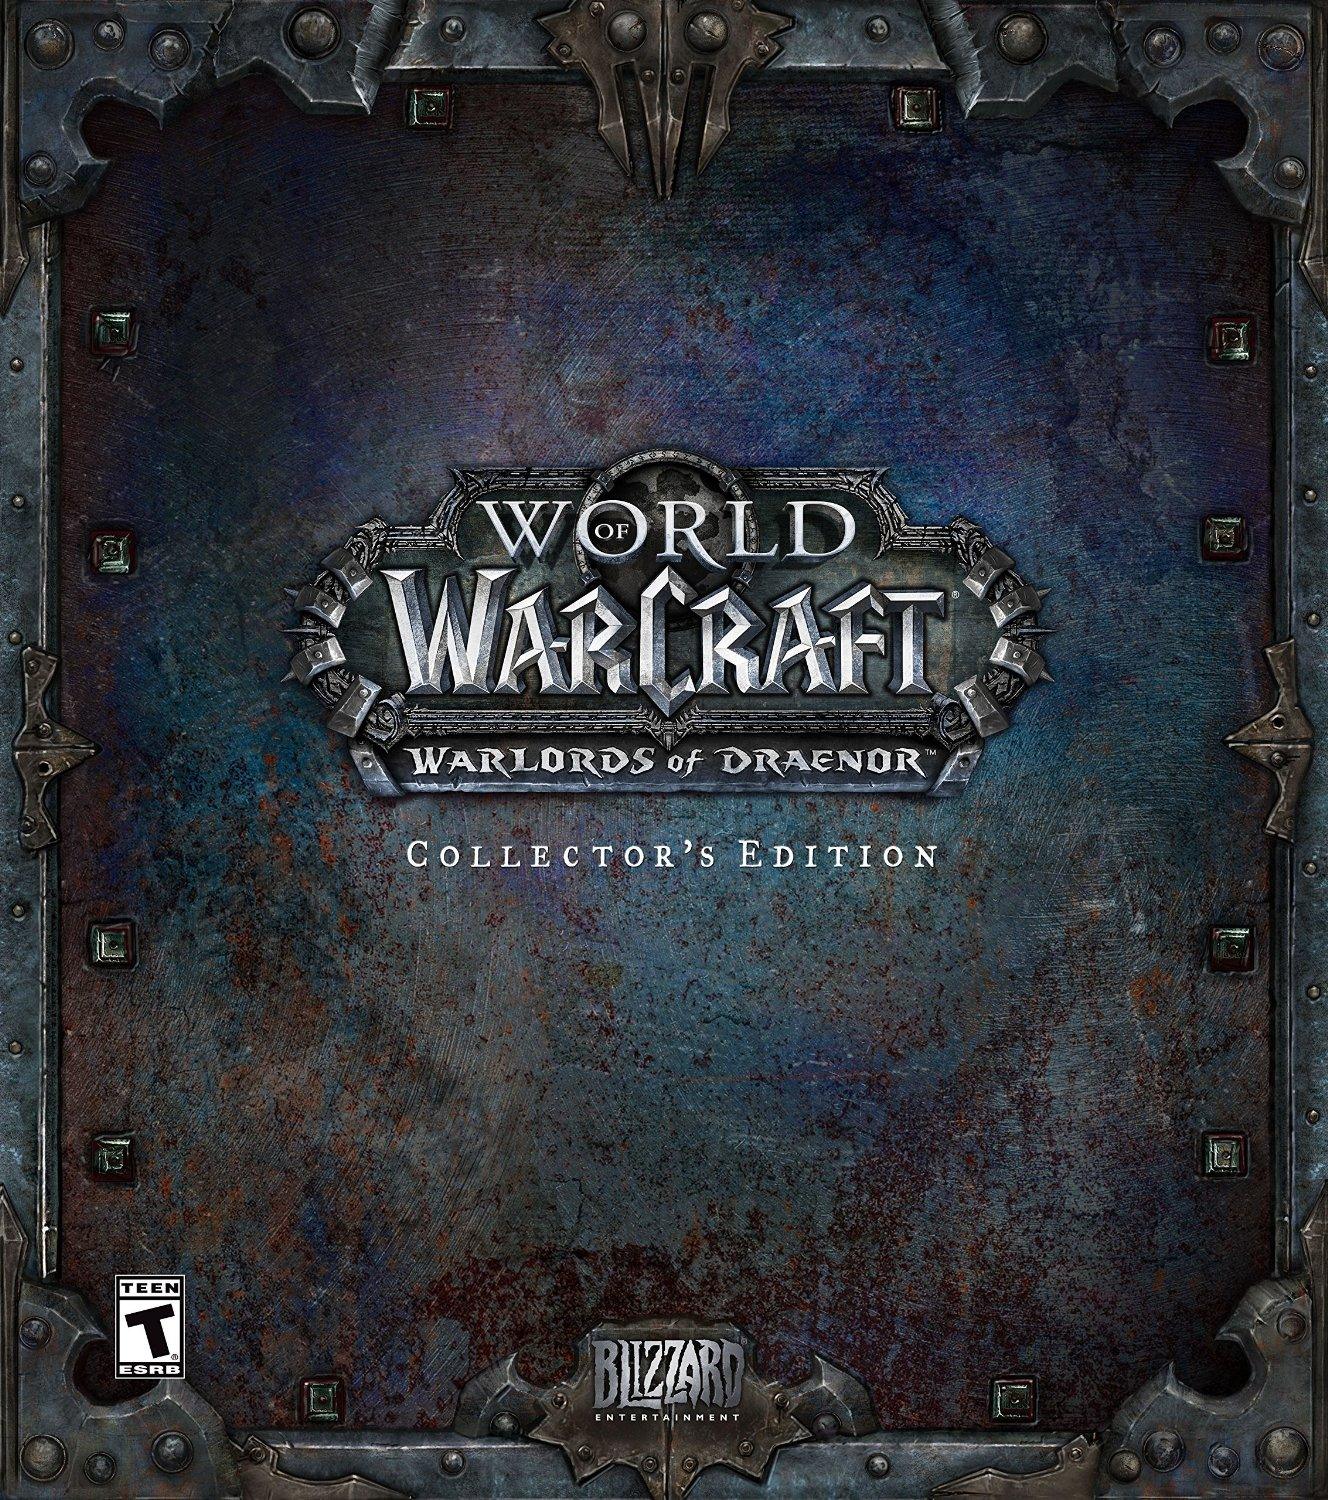 Warlords of Draenor Collector's Edition Highlights